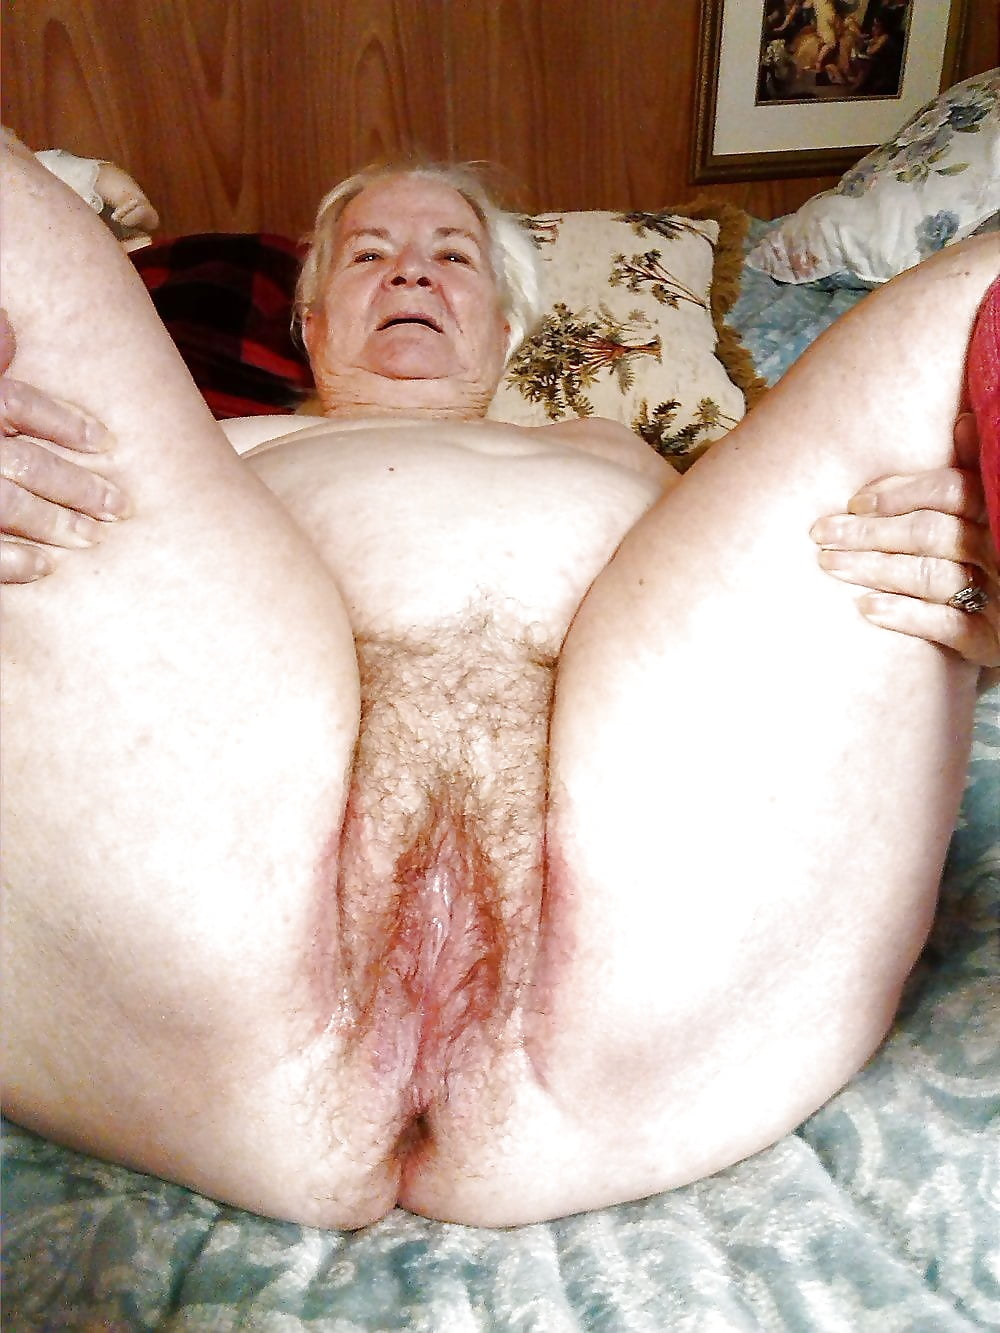 Ugly granny porn gallery — img 14